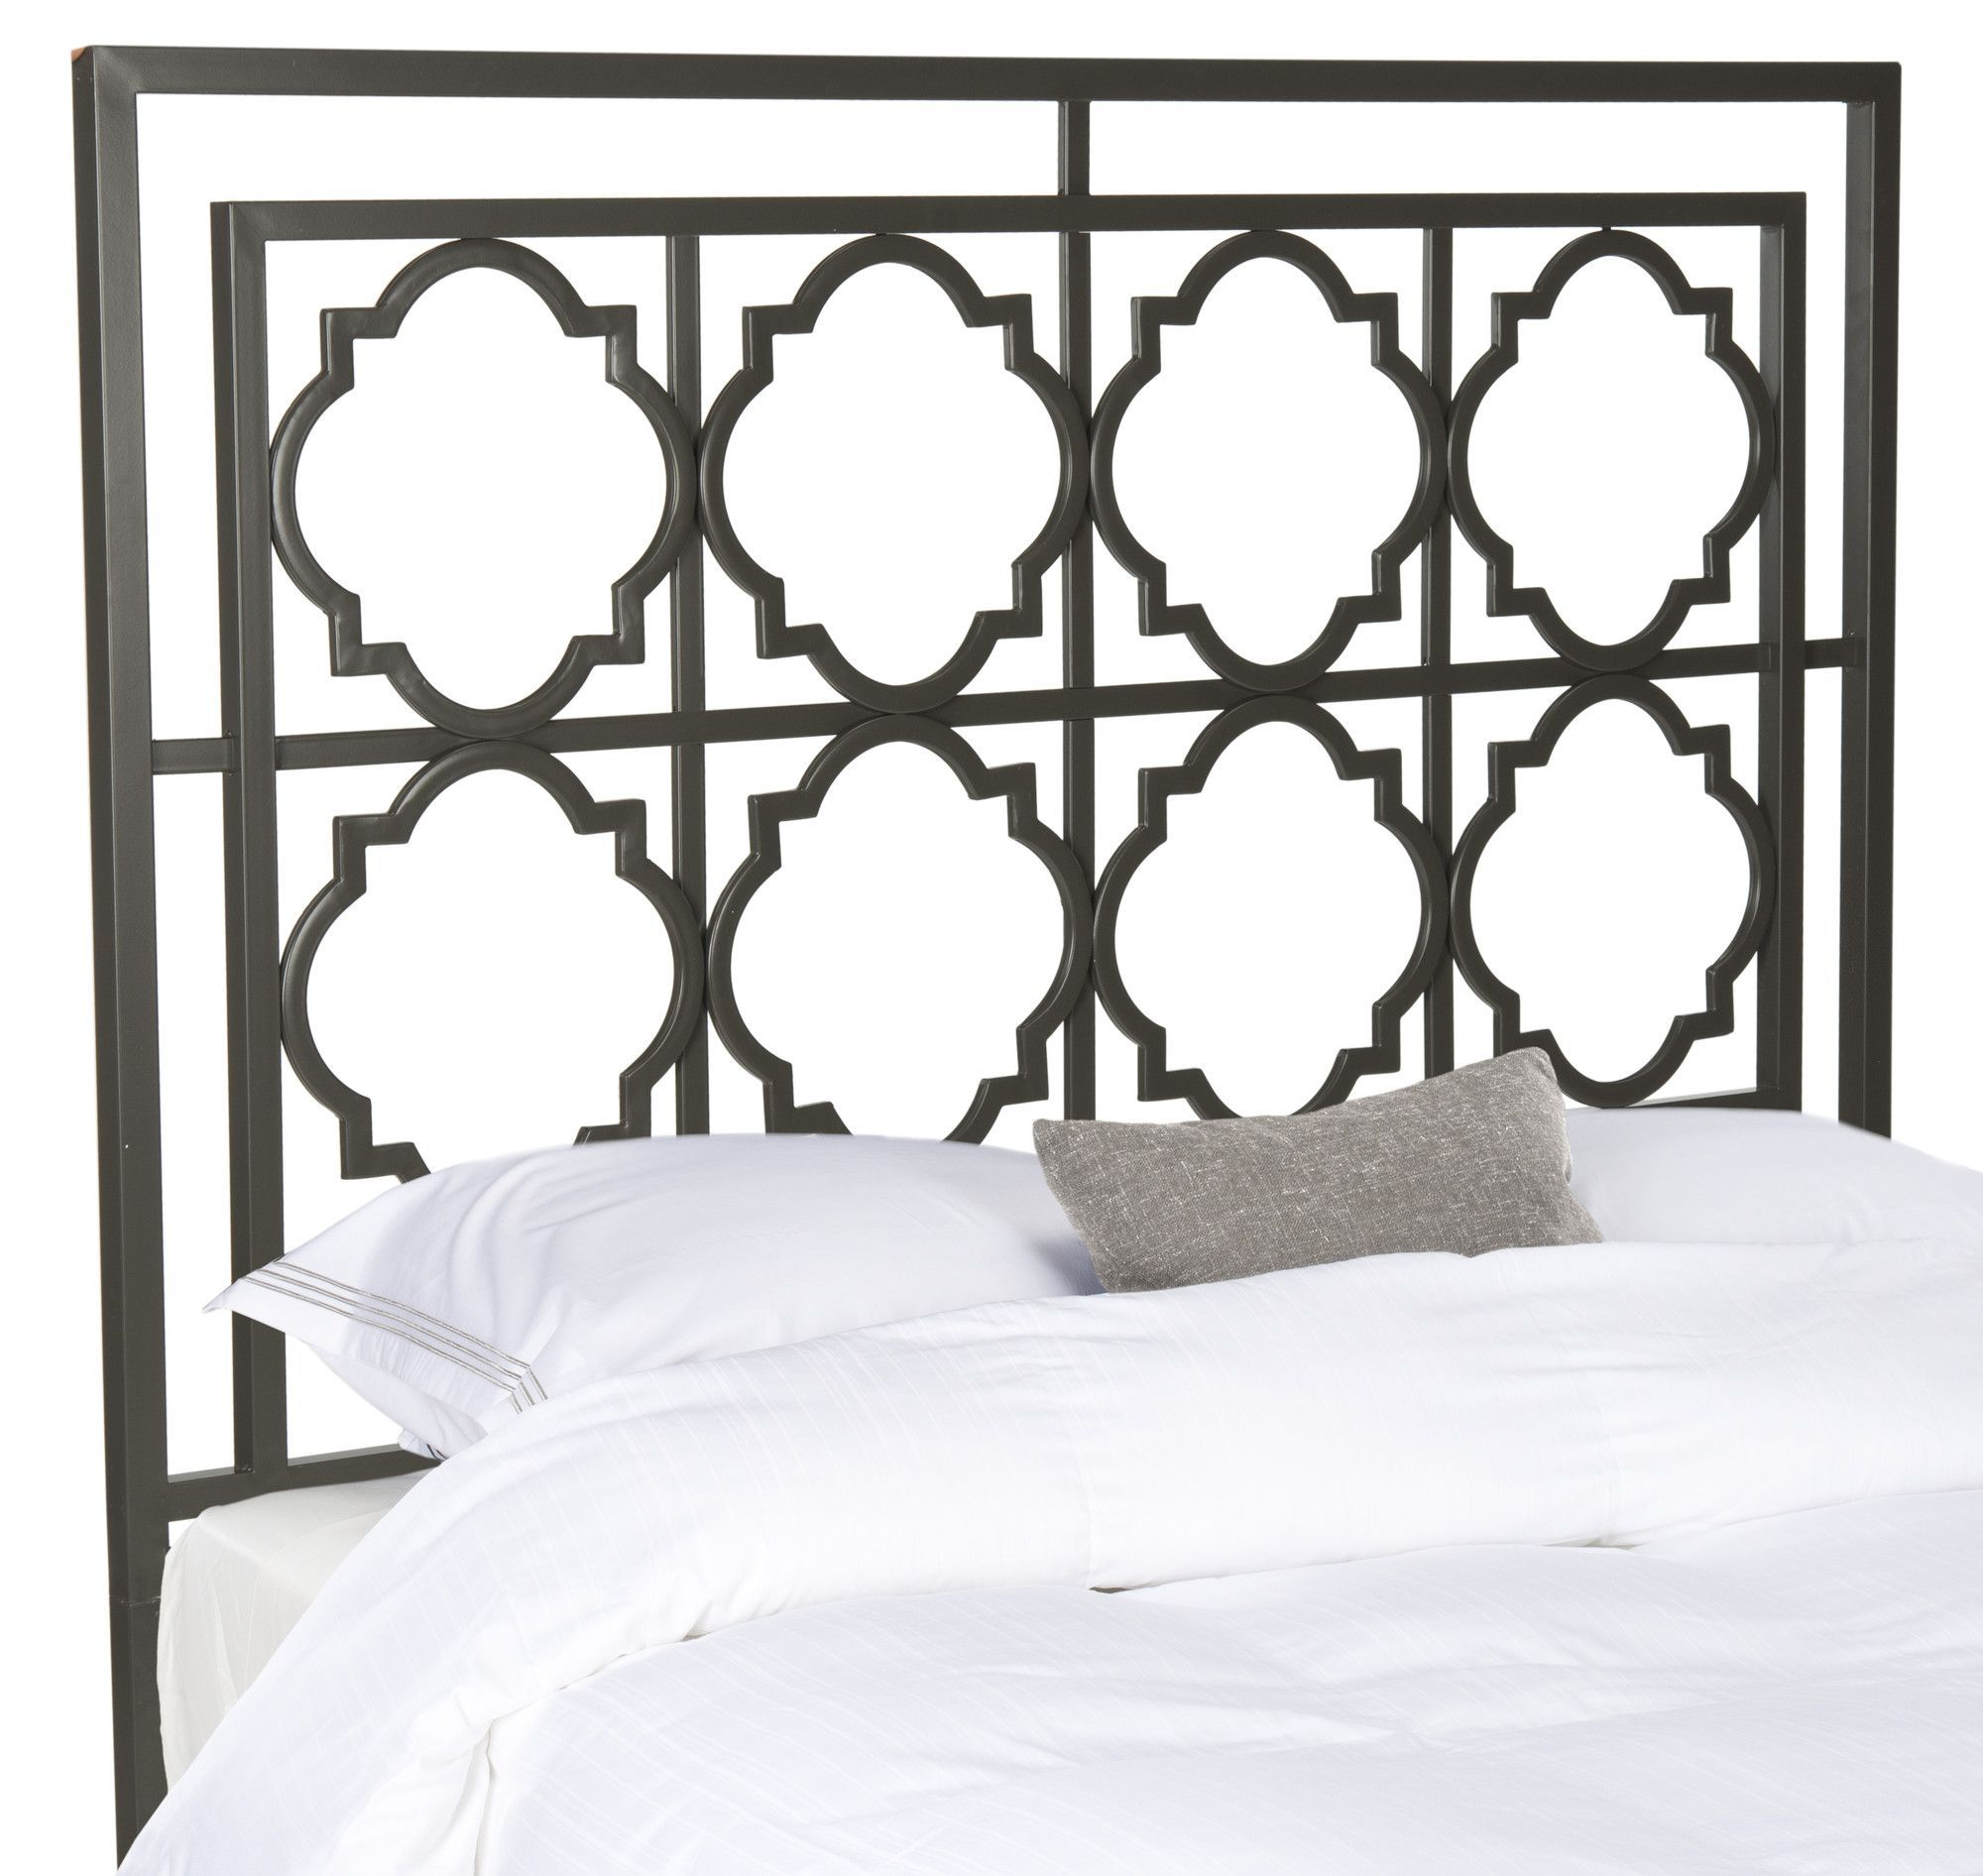 cepheus metal headboard products pinterest products